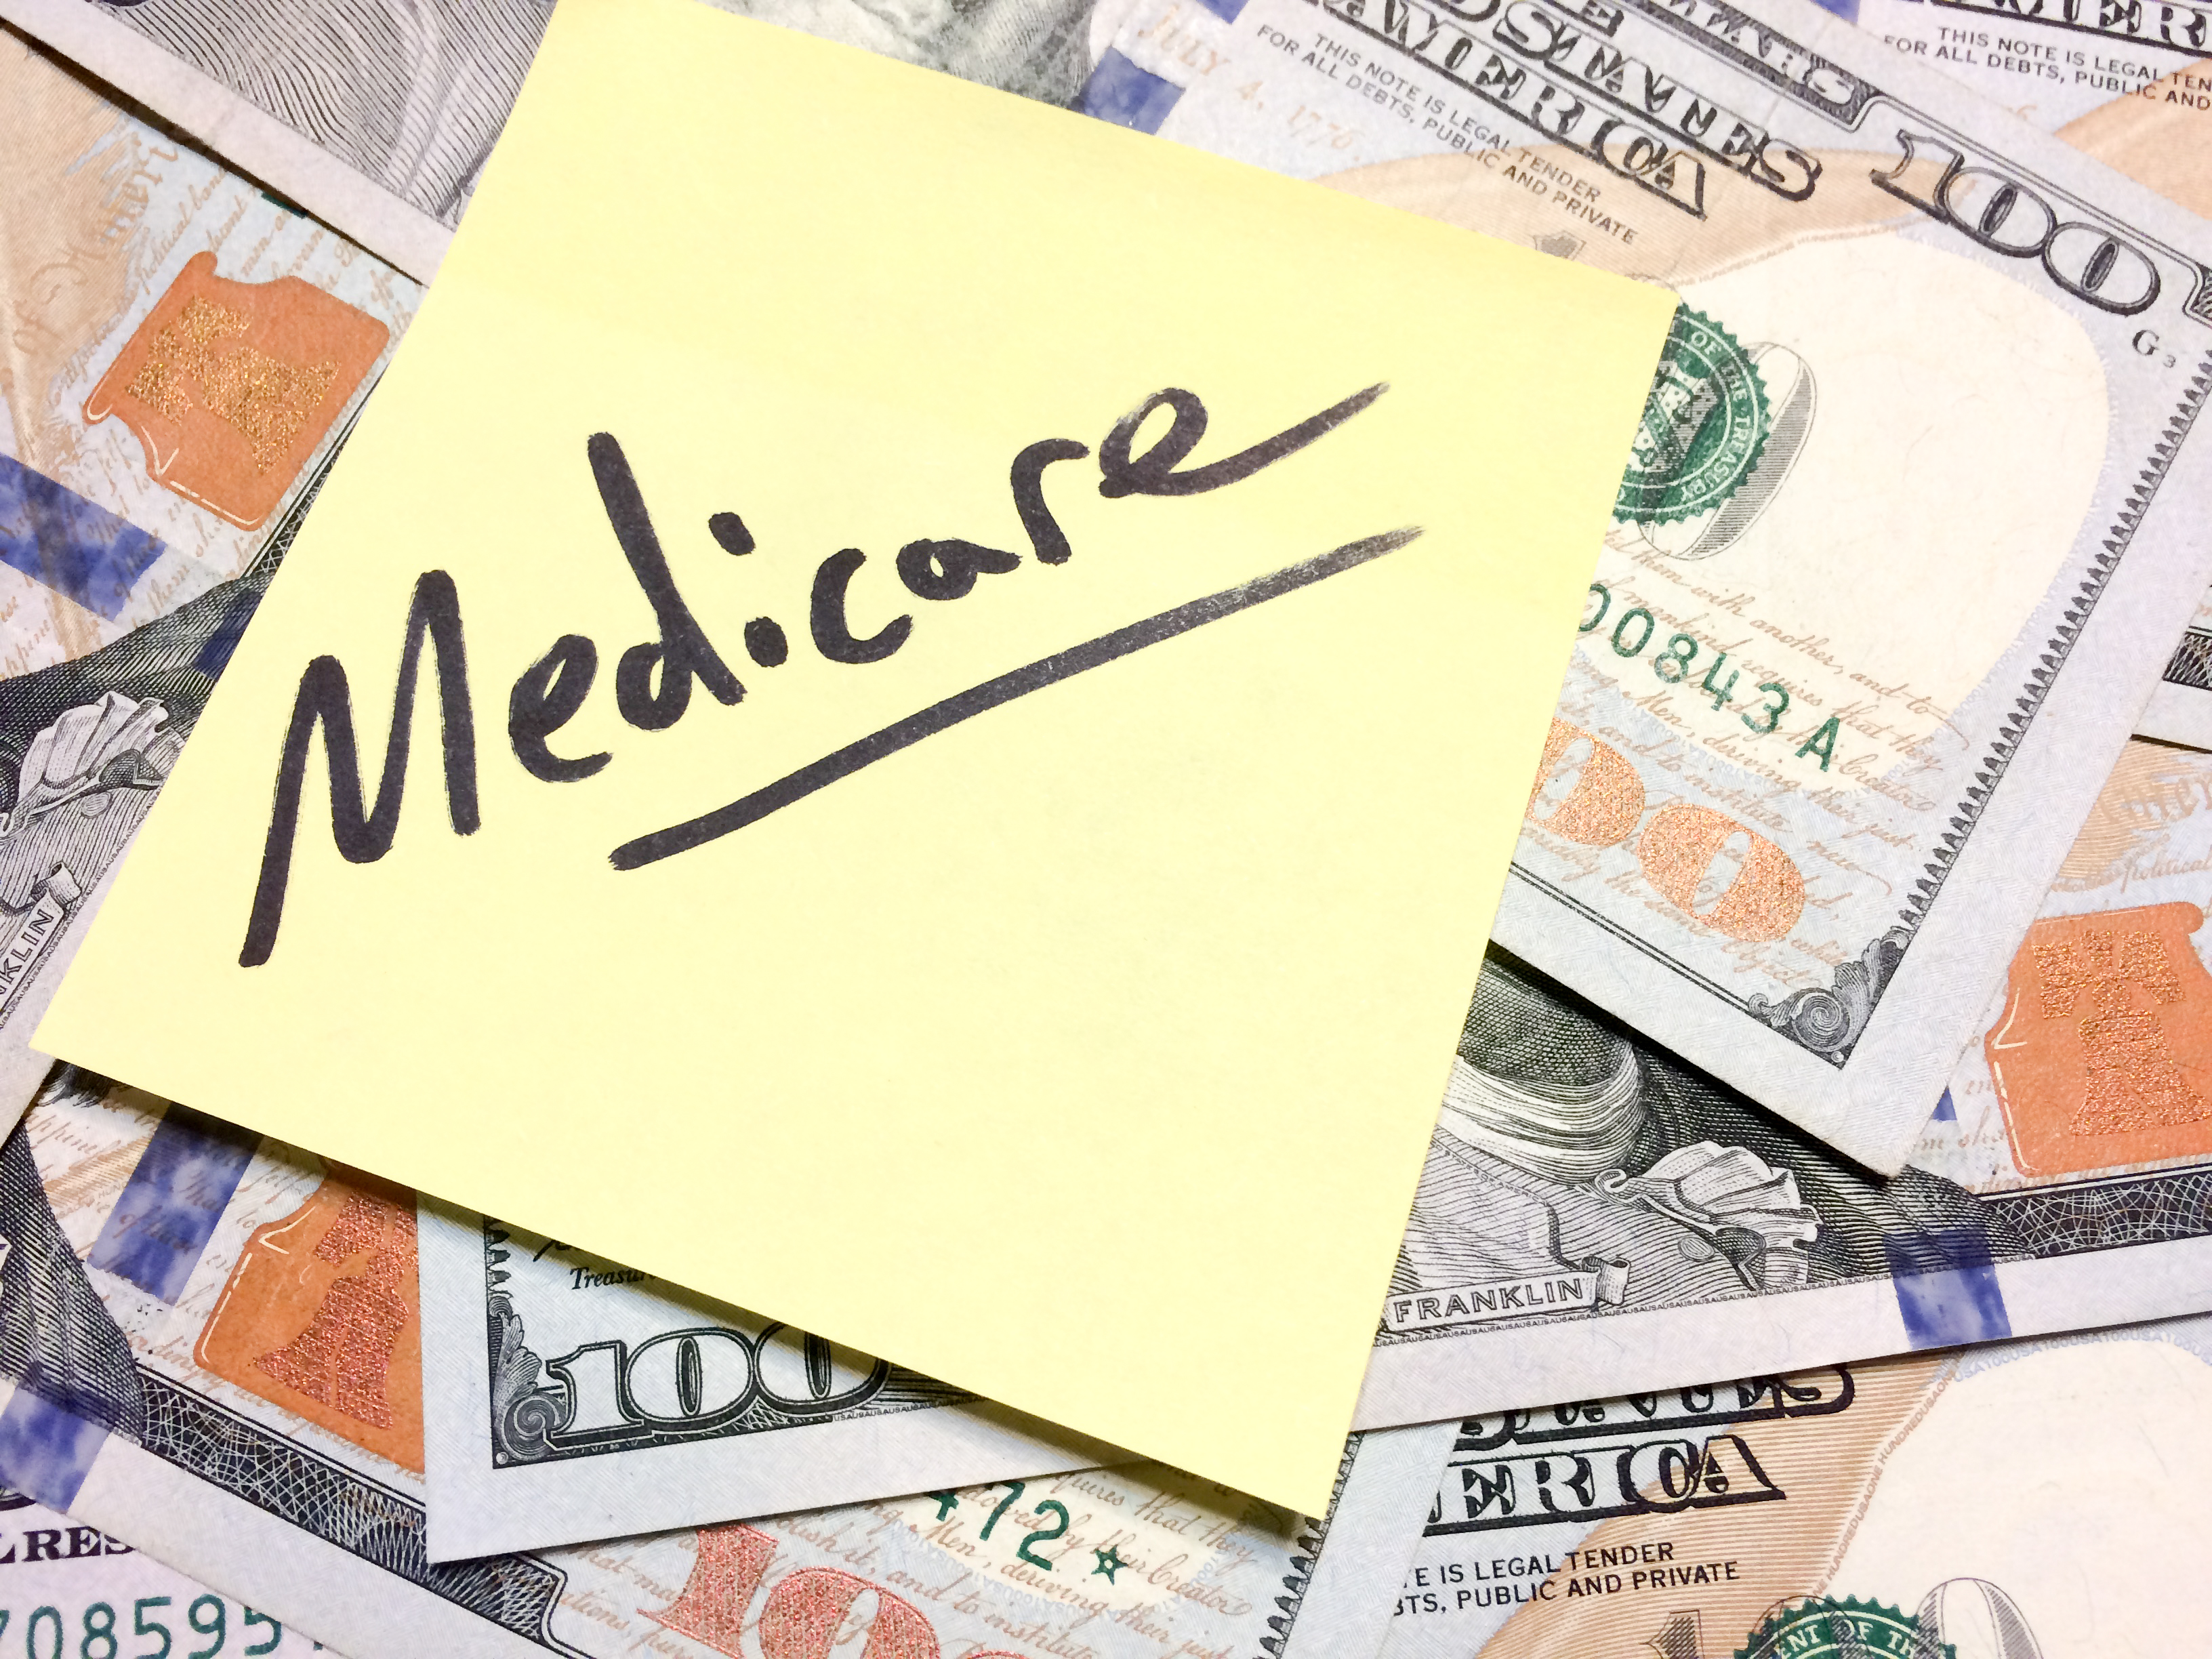 CMS finalizes $2.3B pay bump for hospitals in federal fiscal 2022 |  FierceHealthcare